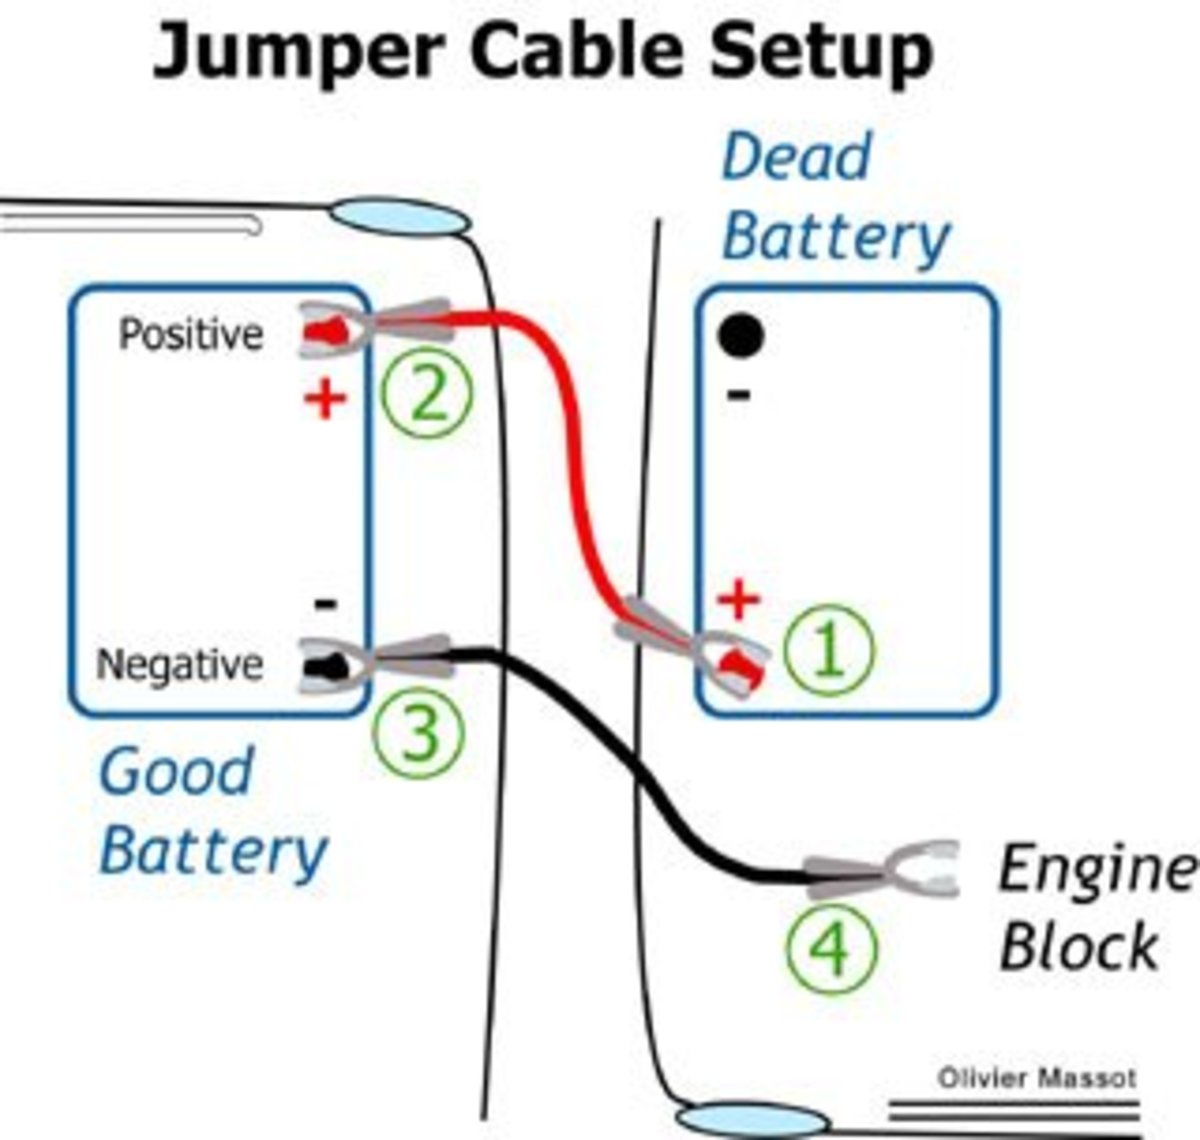 Jumpstart A Battery Cables On Both Terminals On Both Cars